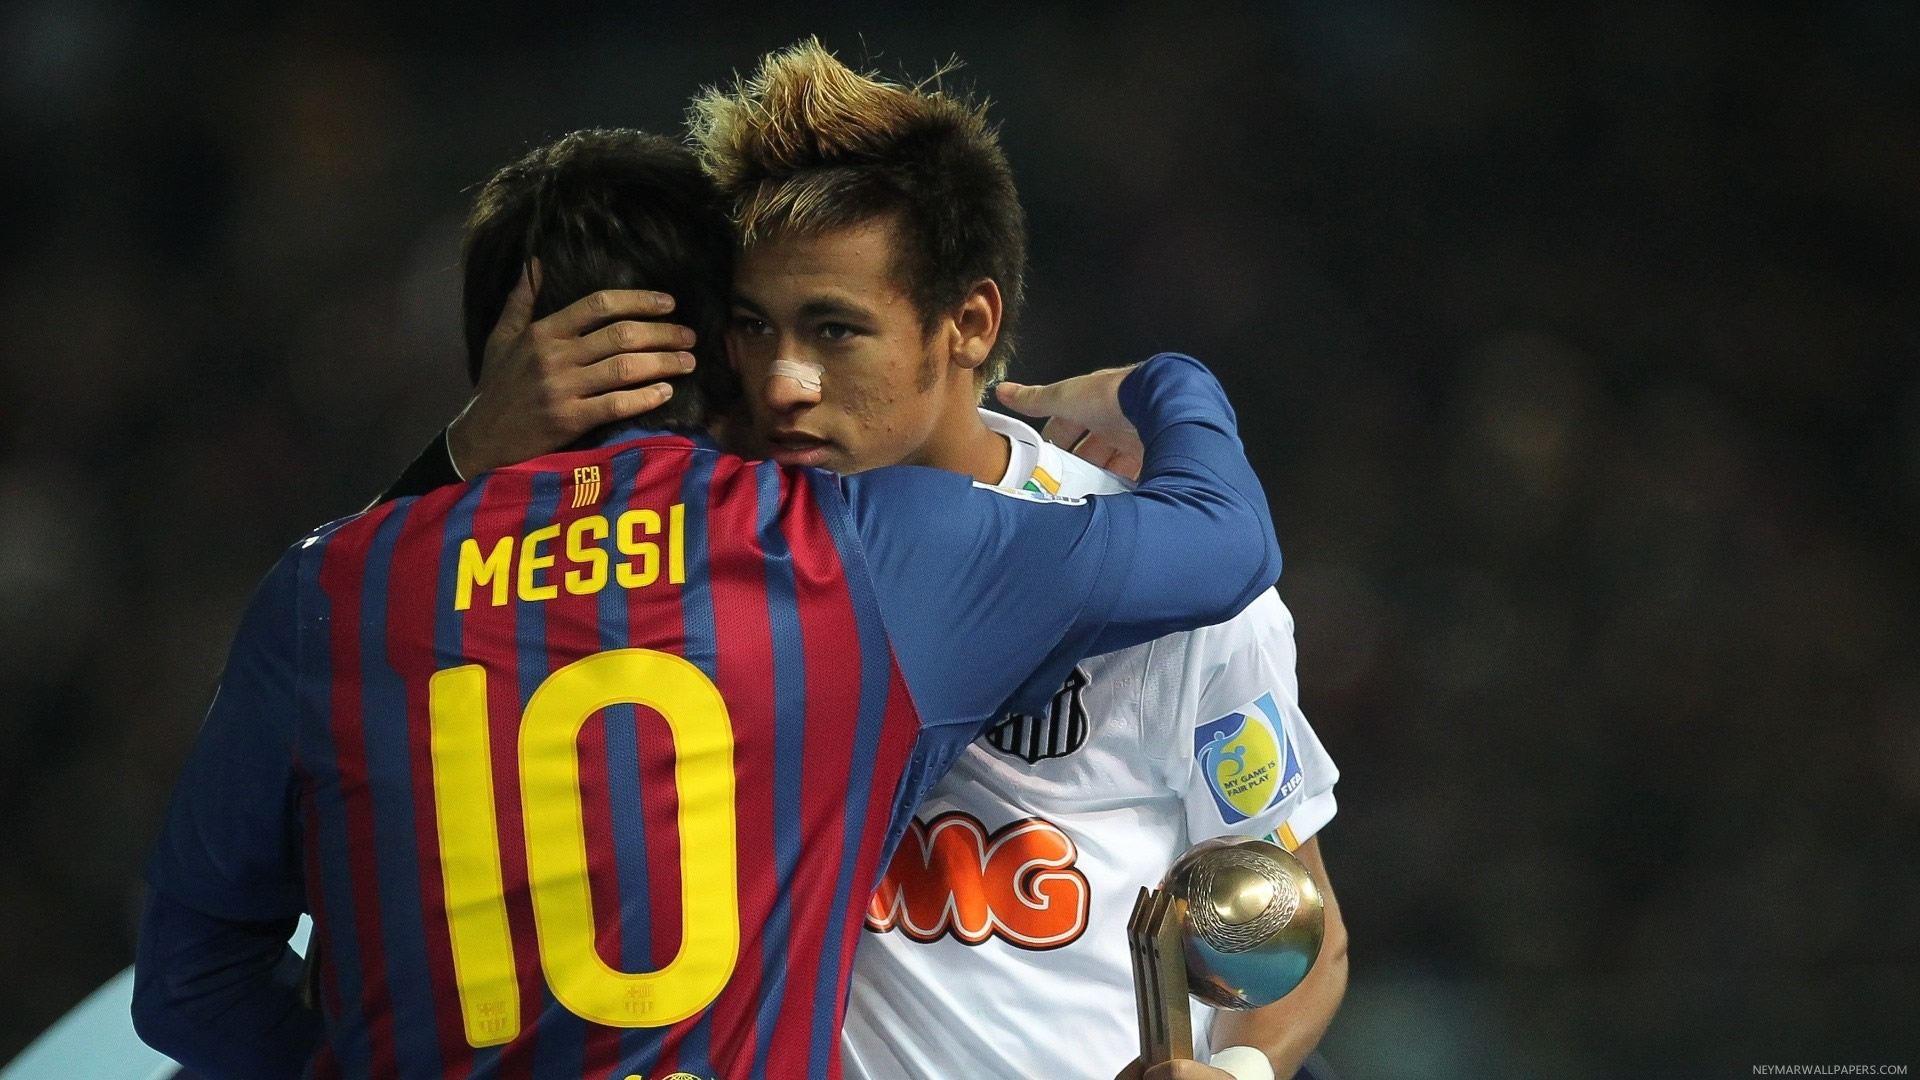 Neymar hugging Messi wallpaper (2)